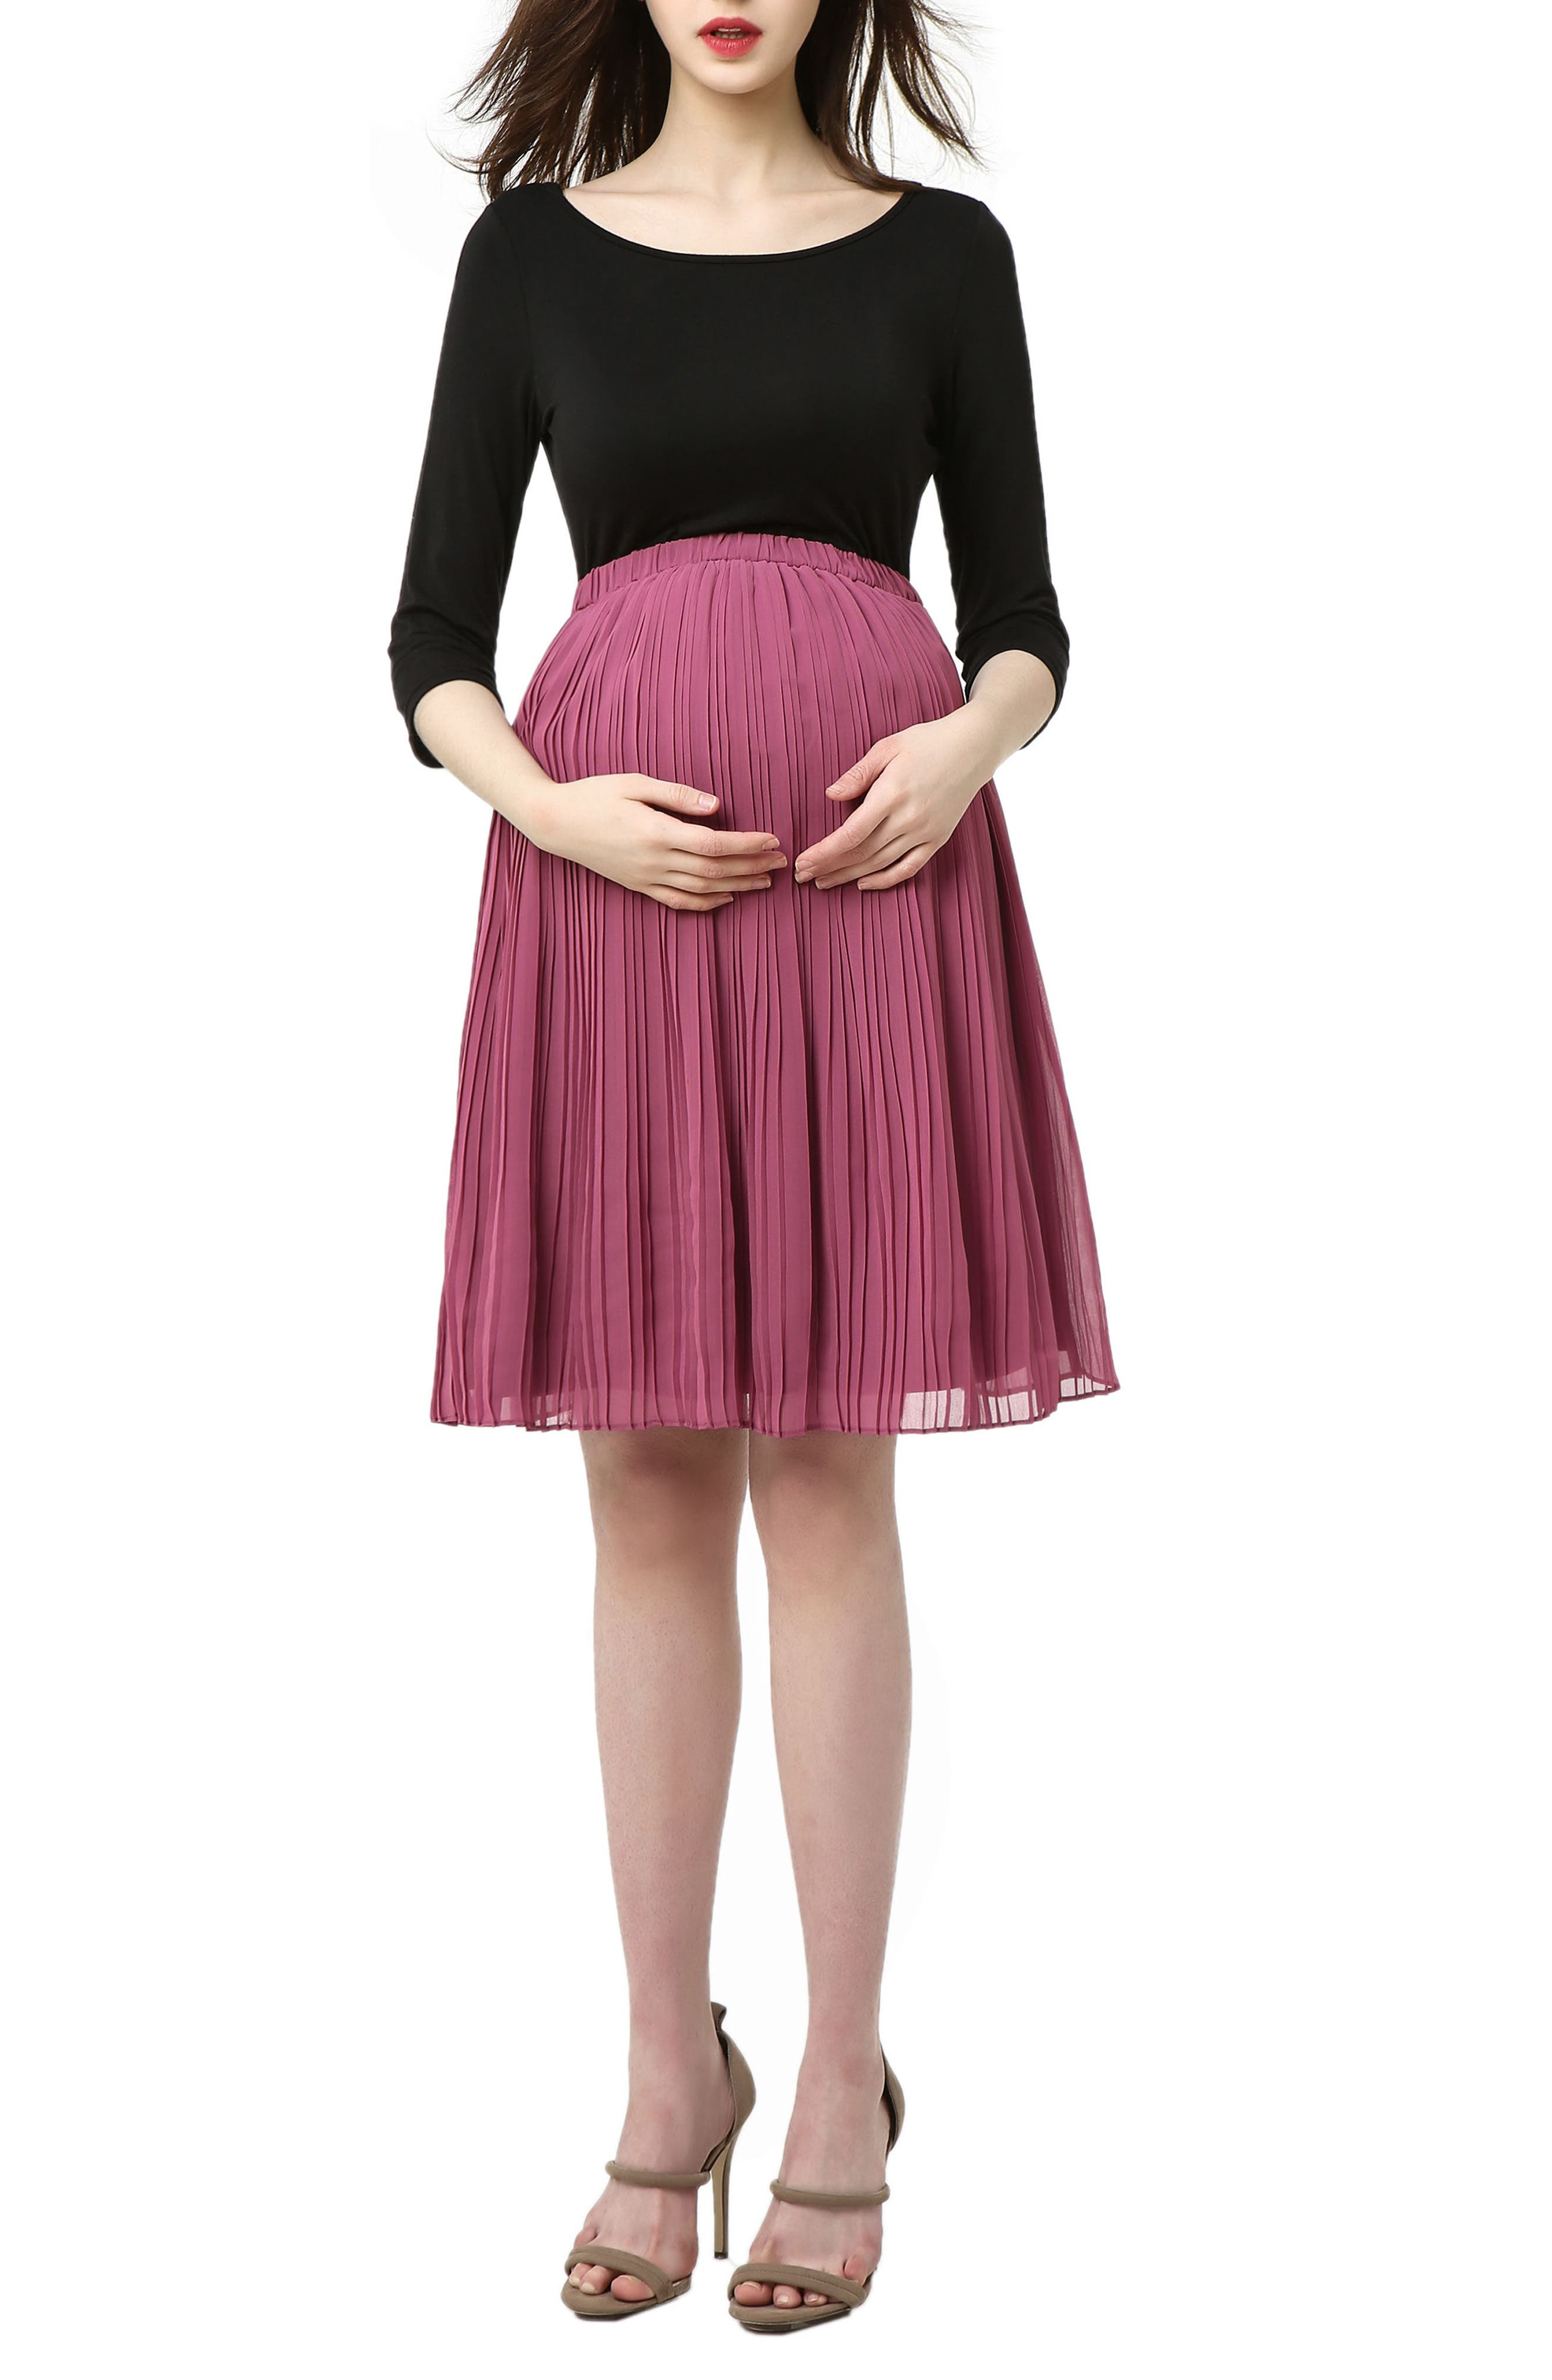 Marie Colorblock Pleat Skirt Maternity Dress,                             Main thumbnail 1, color,                             BLACK